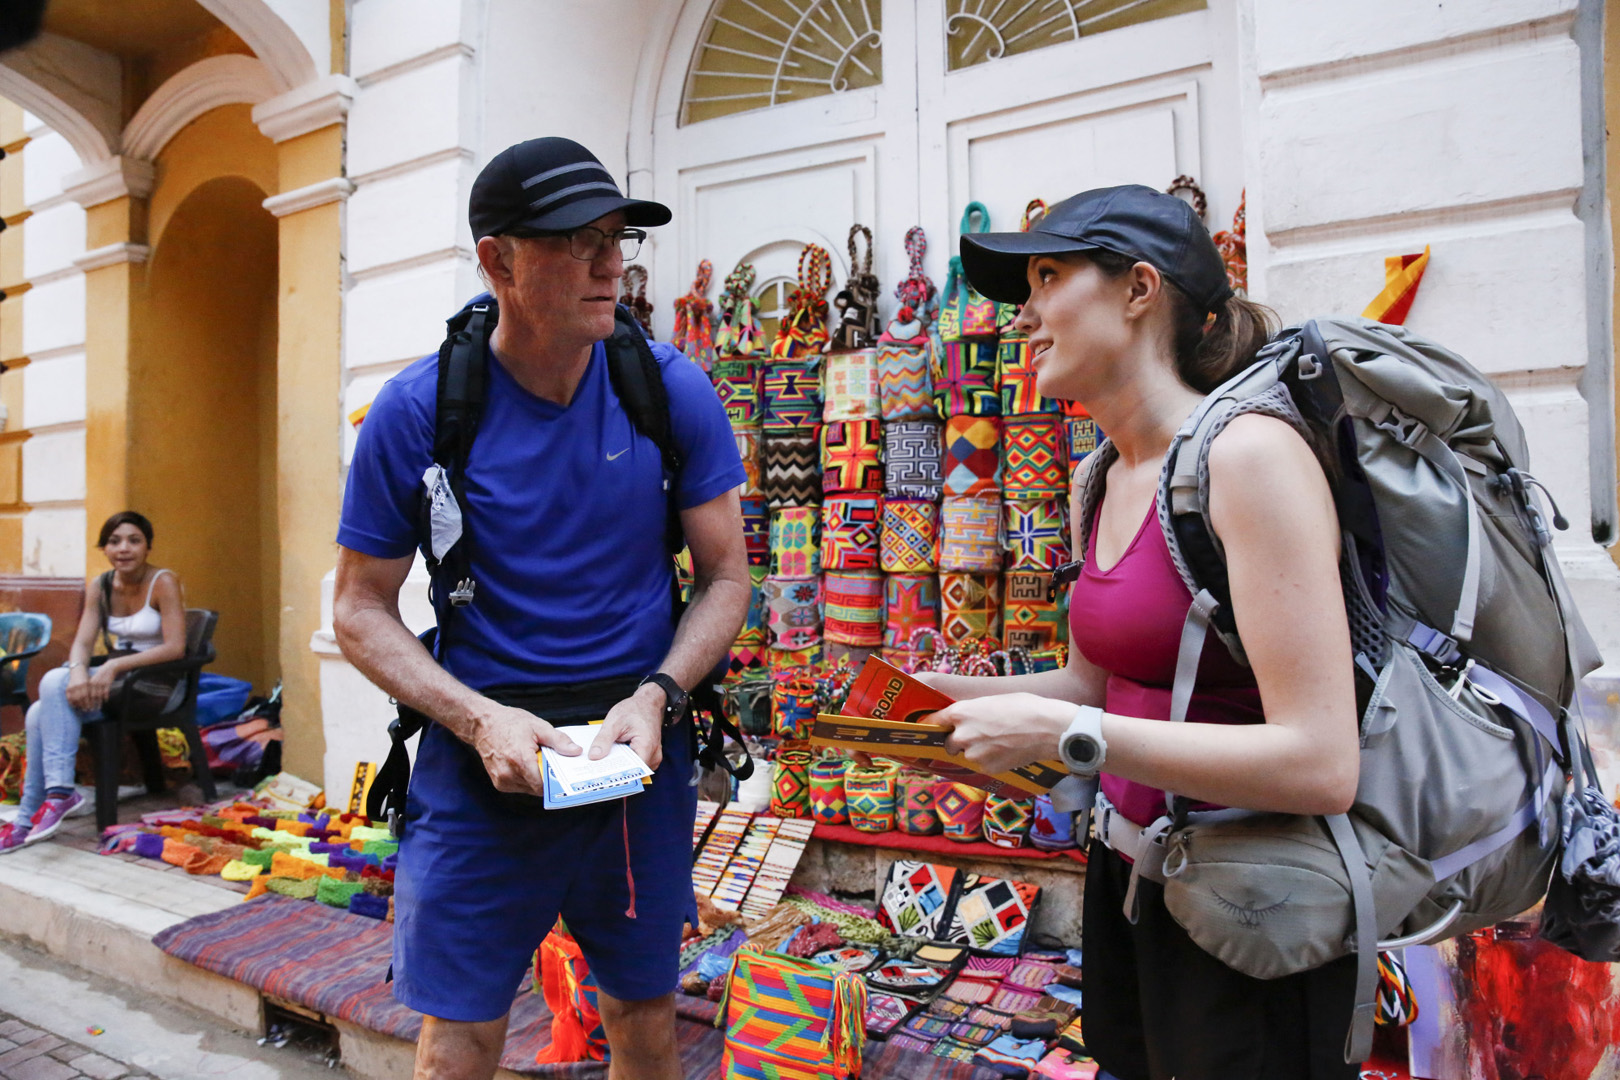 In this Roadblock, Scott and Blair must find two matches to the sample mochilas they are given.